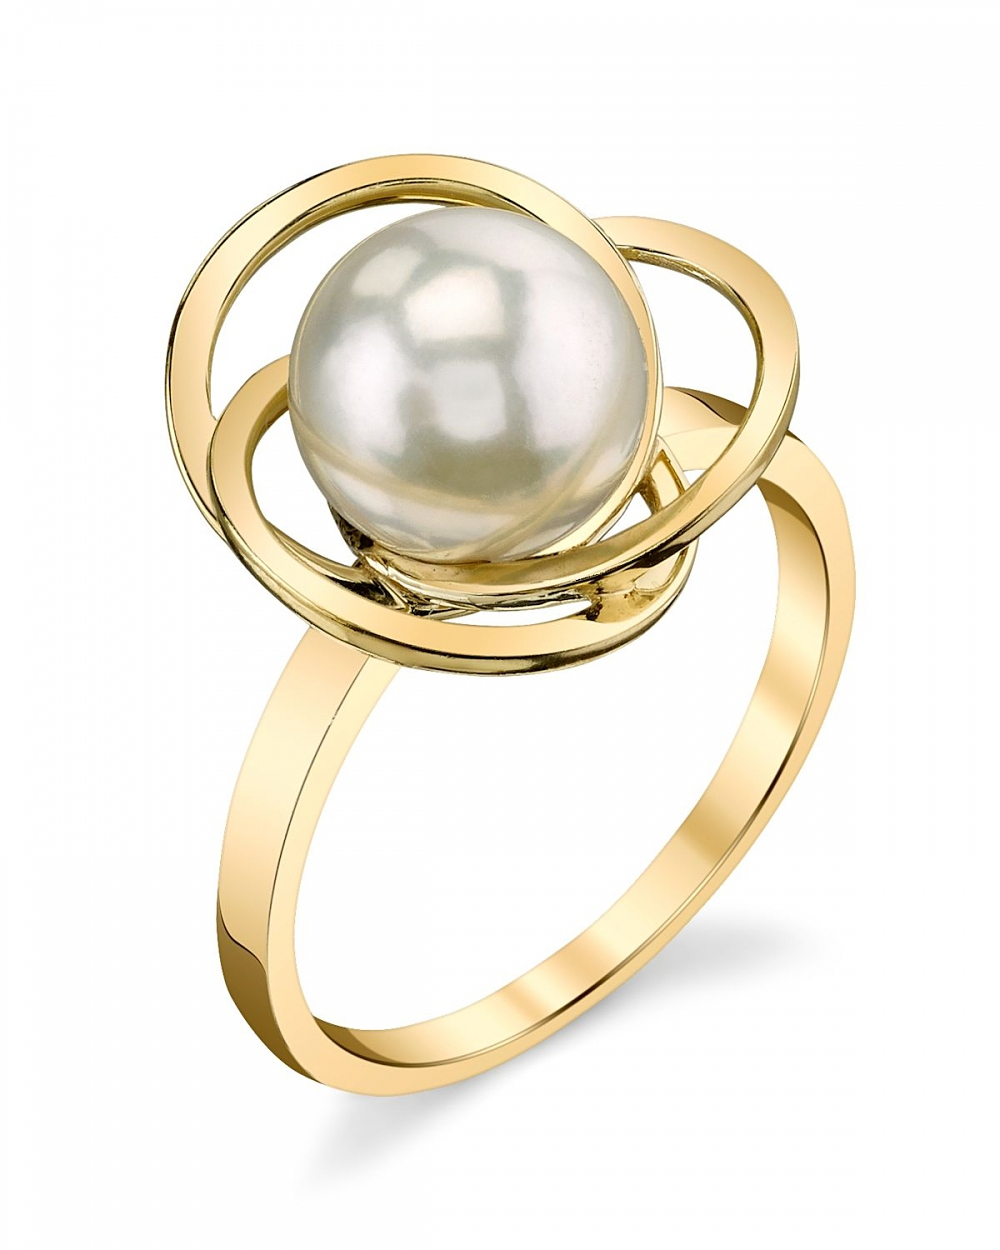 14K 9mm White South Sea Cultured Pearl Lexi Ring